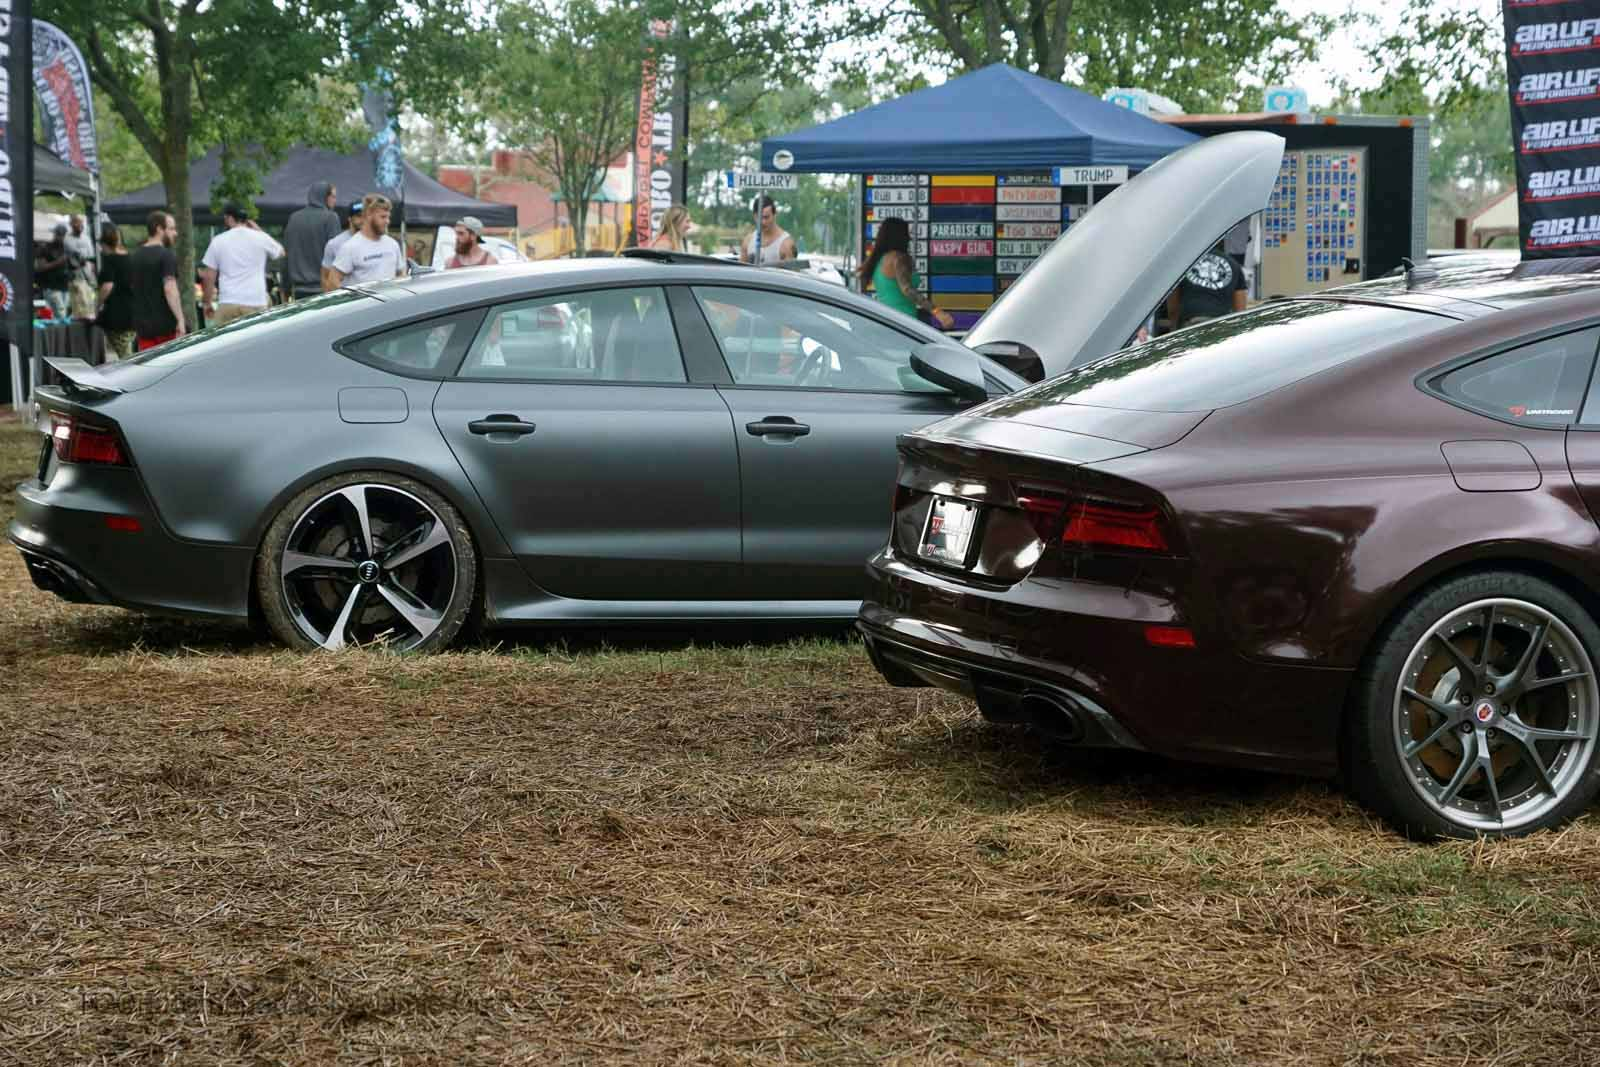 Audi Rs5 2015 - 2017 Car Reviews and Photo Gallery - cars.stateday.us